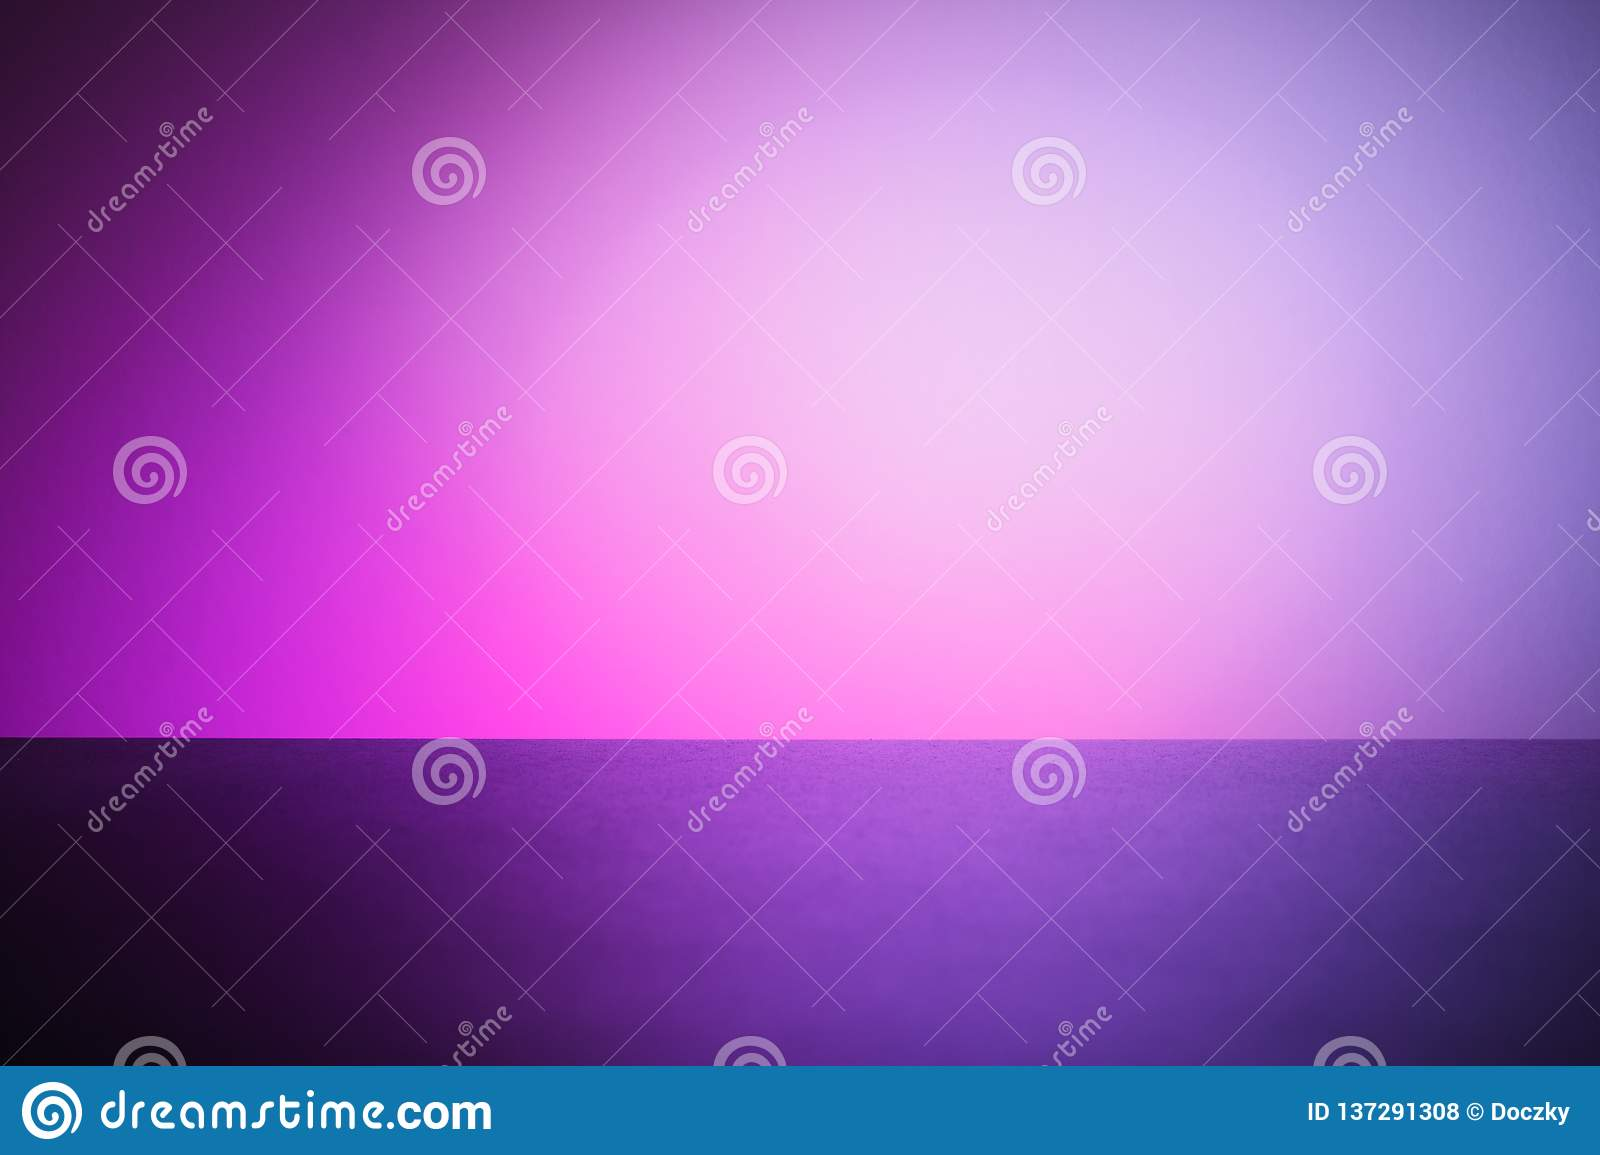 Pink, red and purple abstract background